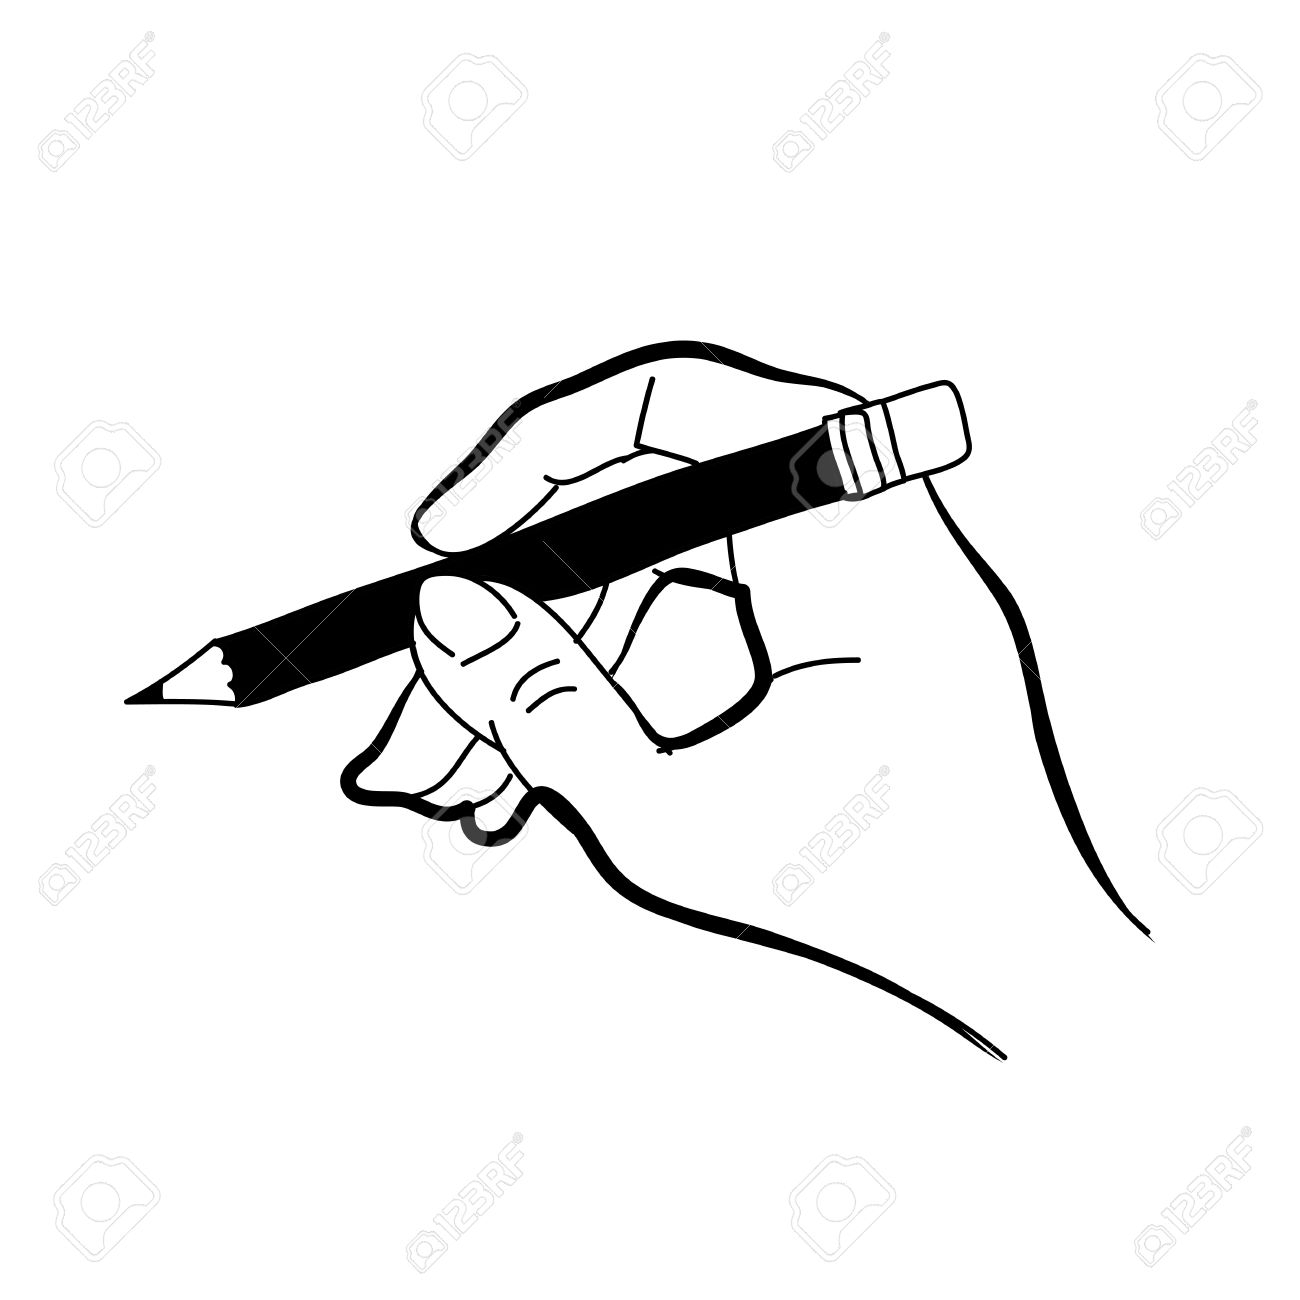 1300x1300 Drawings Of Hands Holding A Pencil Hand Drawing Freehand Sketch